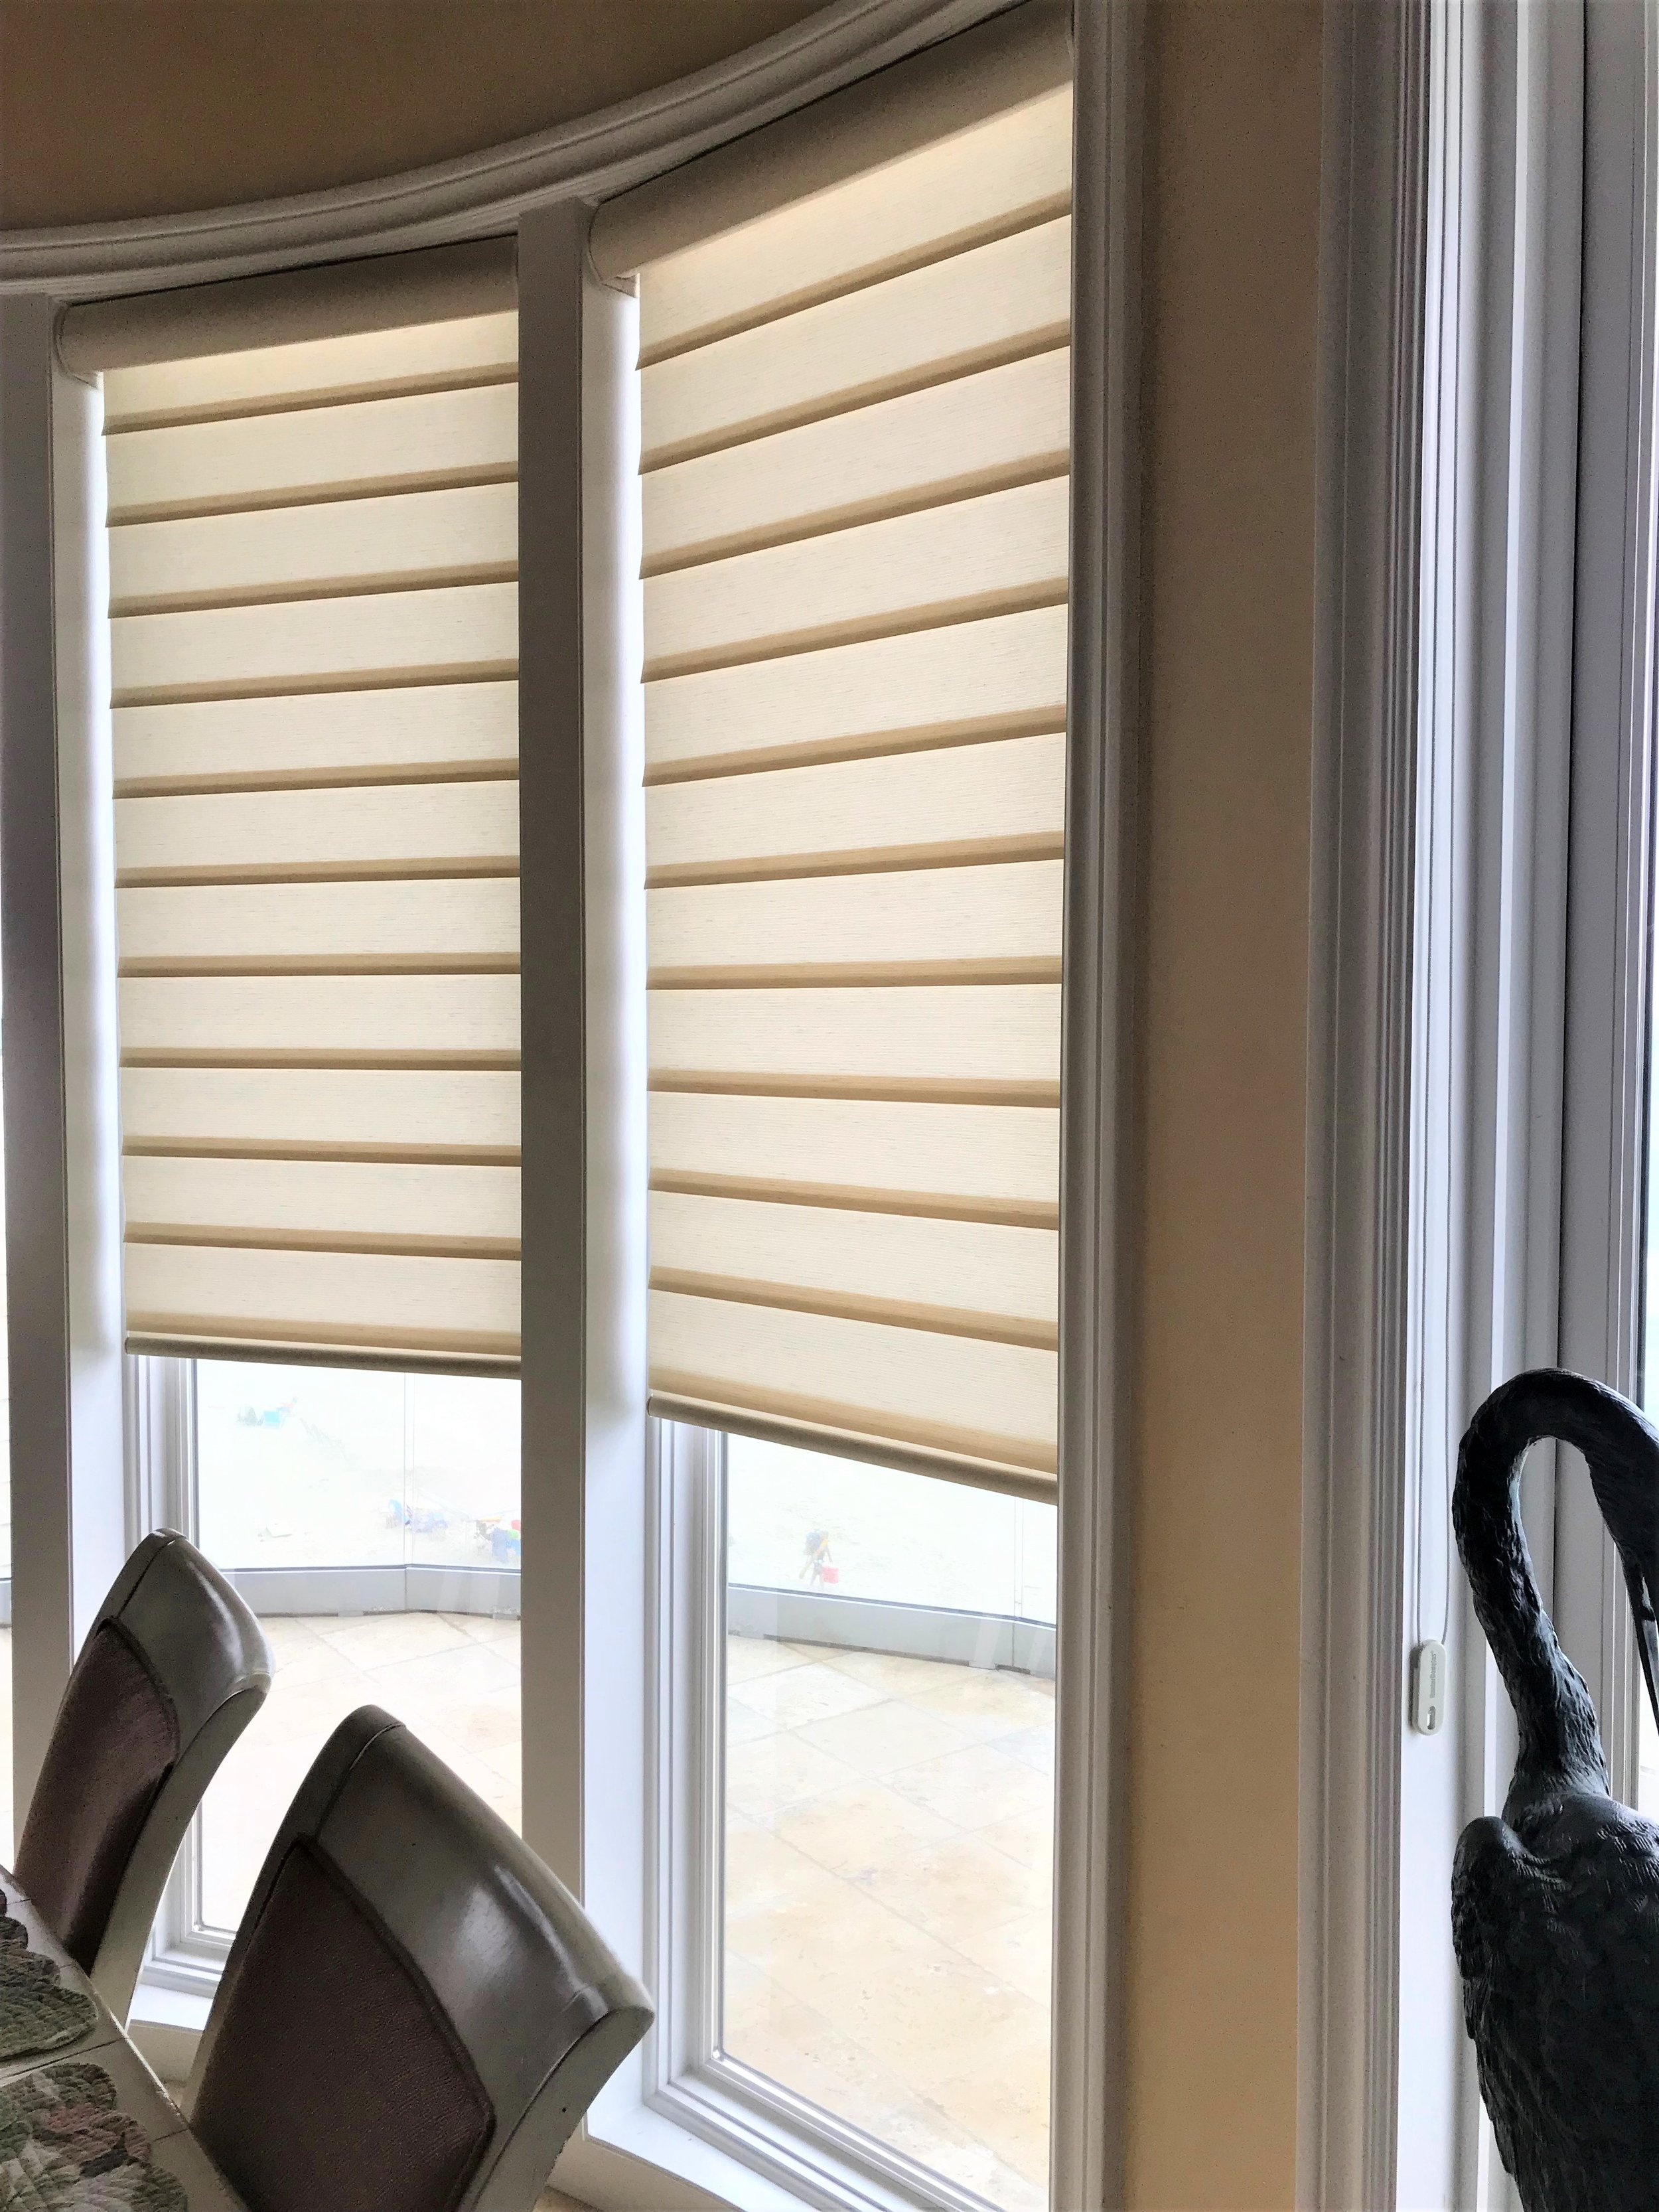 Gallery of Custom Blinds, Shutters & Power Shades in Carlsbad, California (CA) like Cellular in Homes